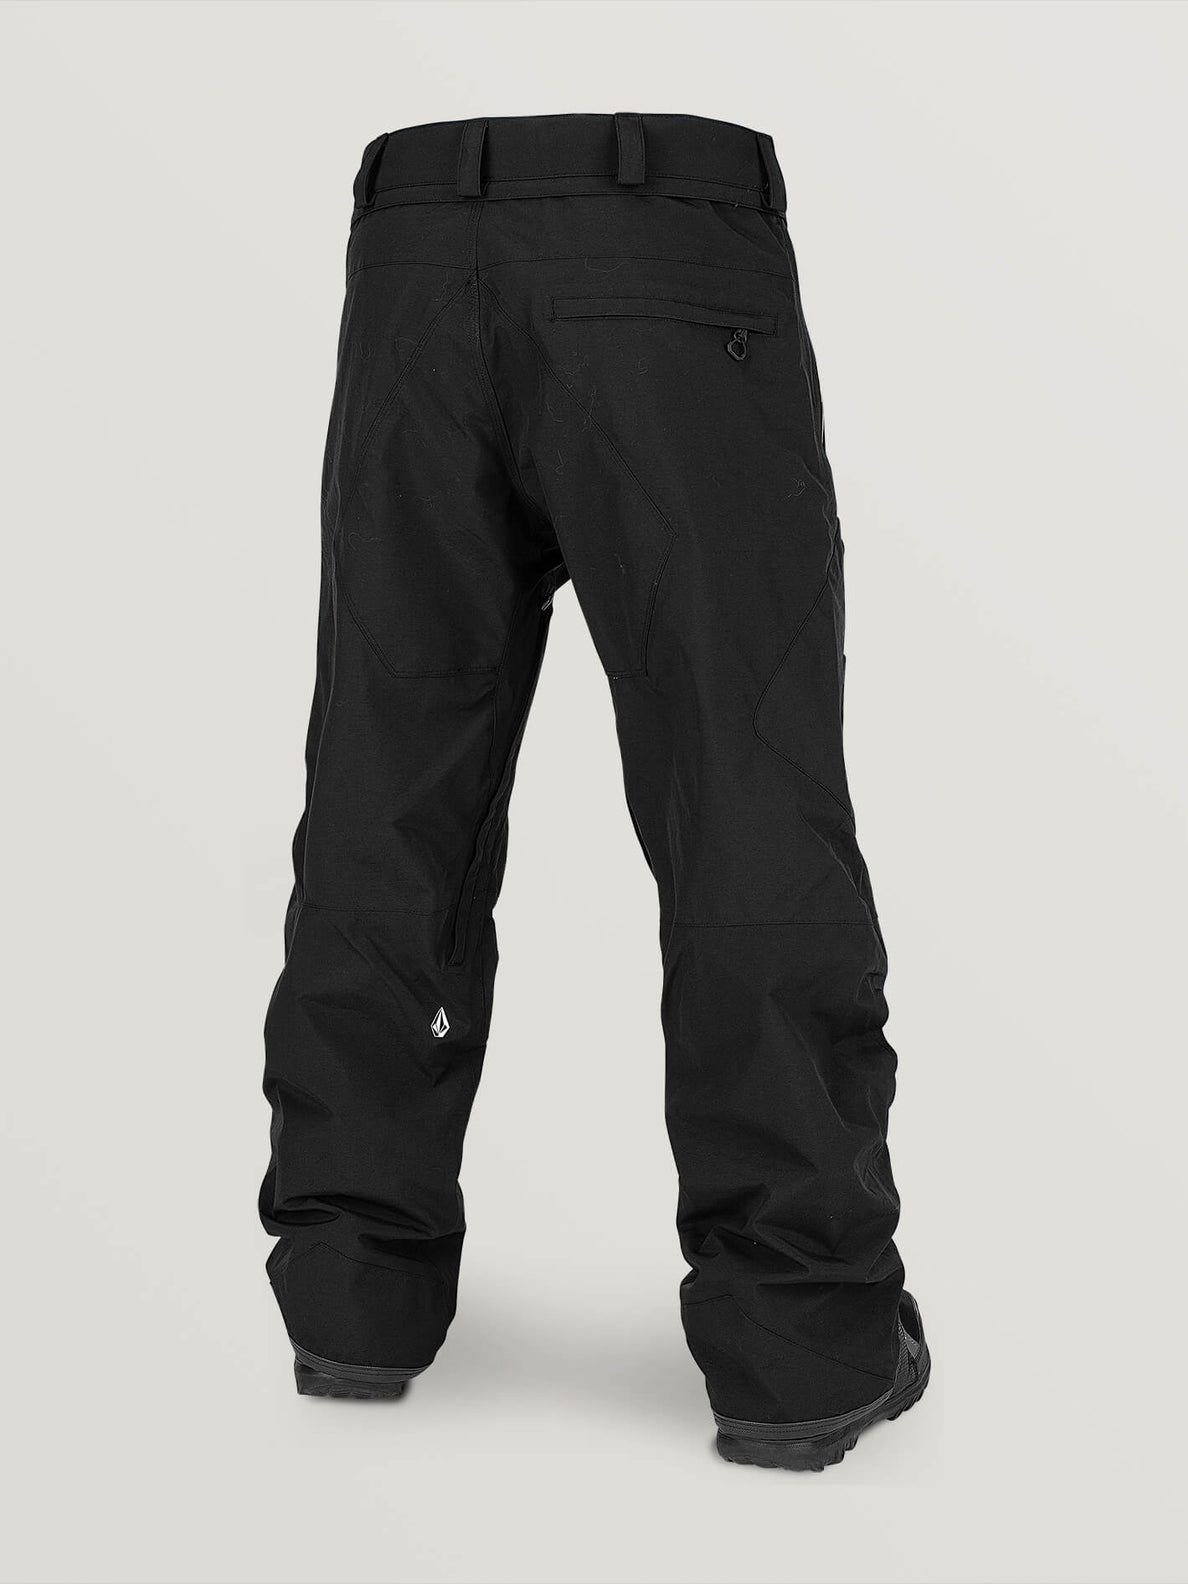 L Gore-Tex Pants - Black (G1351904_BLK) [B]